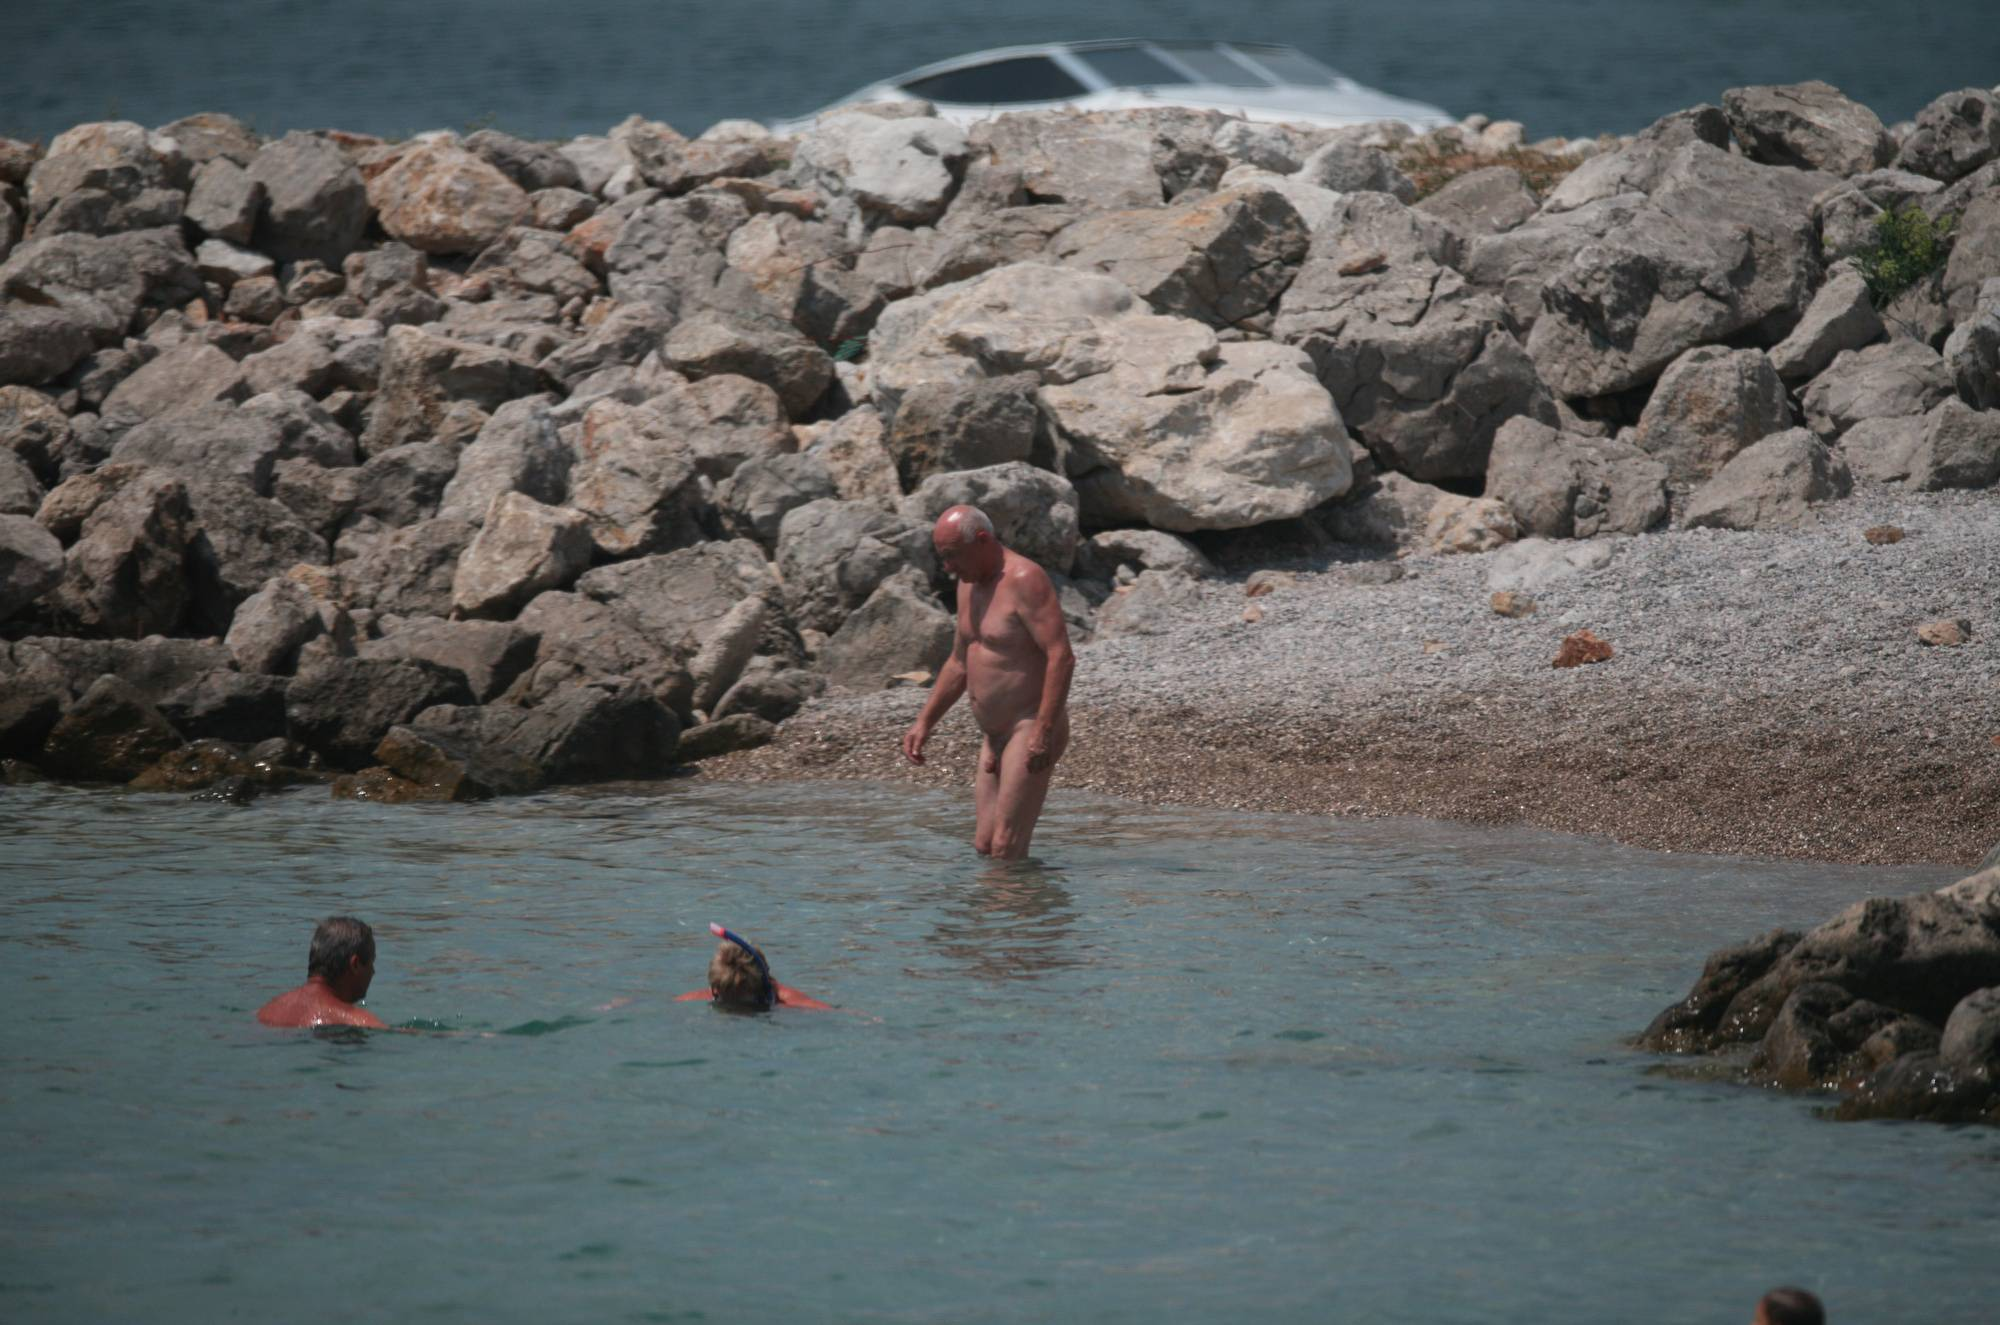 Nudist Photos Cove Pyramid In Waters - 1